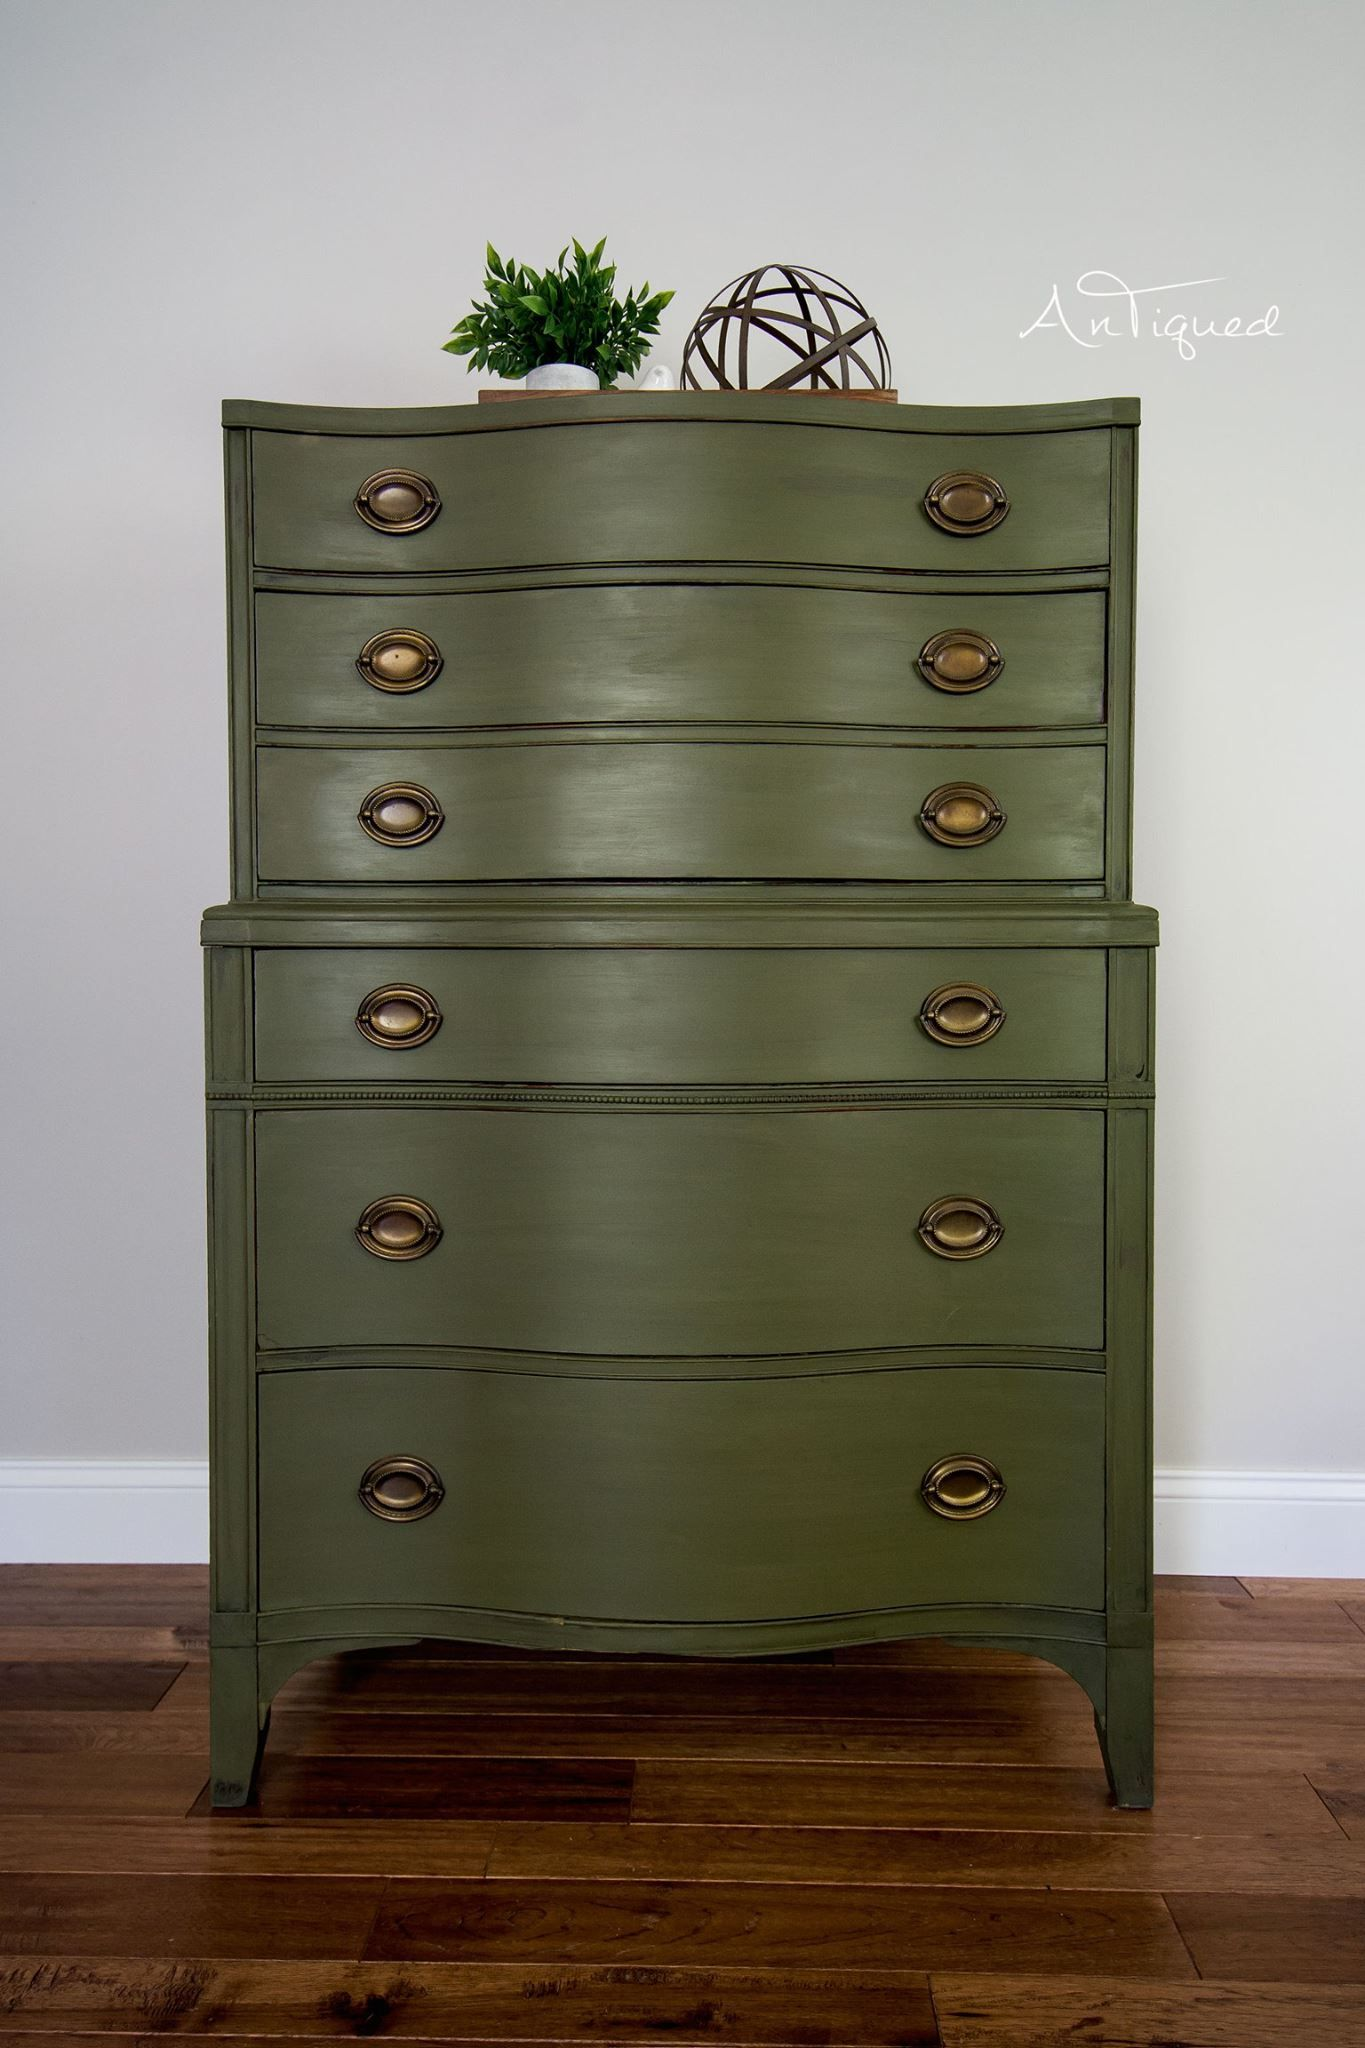 Olive Green Chalk Painted Chest Of Drawers With Glaze Home Decor Love Green Painted Furniture Painted Furniture Green Bedroom Furniture